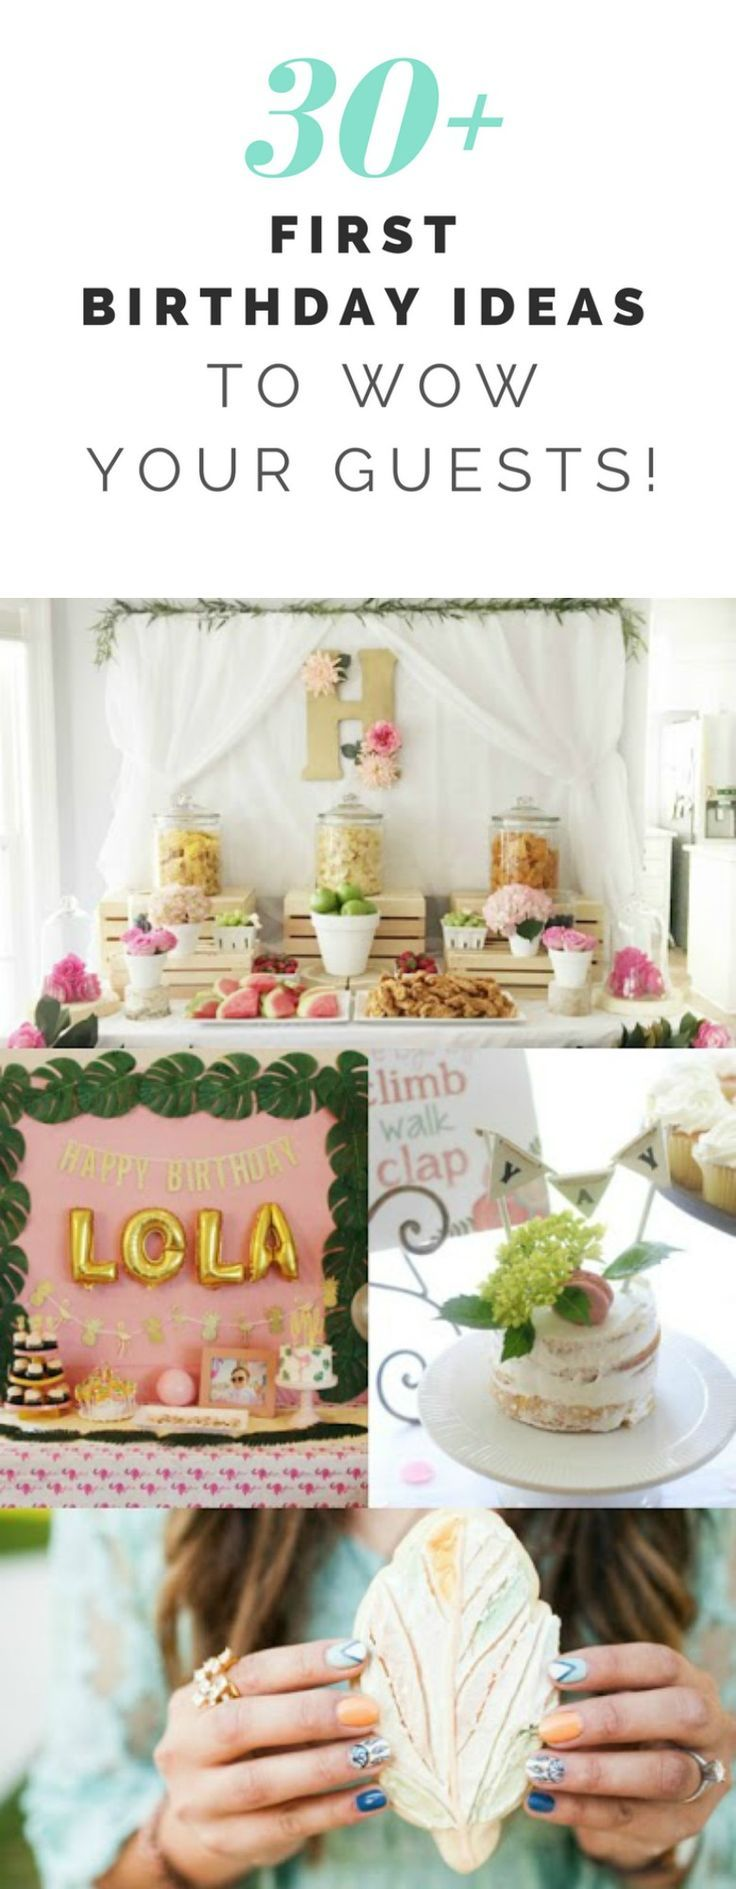 30+ First Birthday Party Ideas That Will WOW Your Guests | Stay-at ...